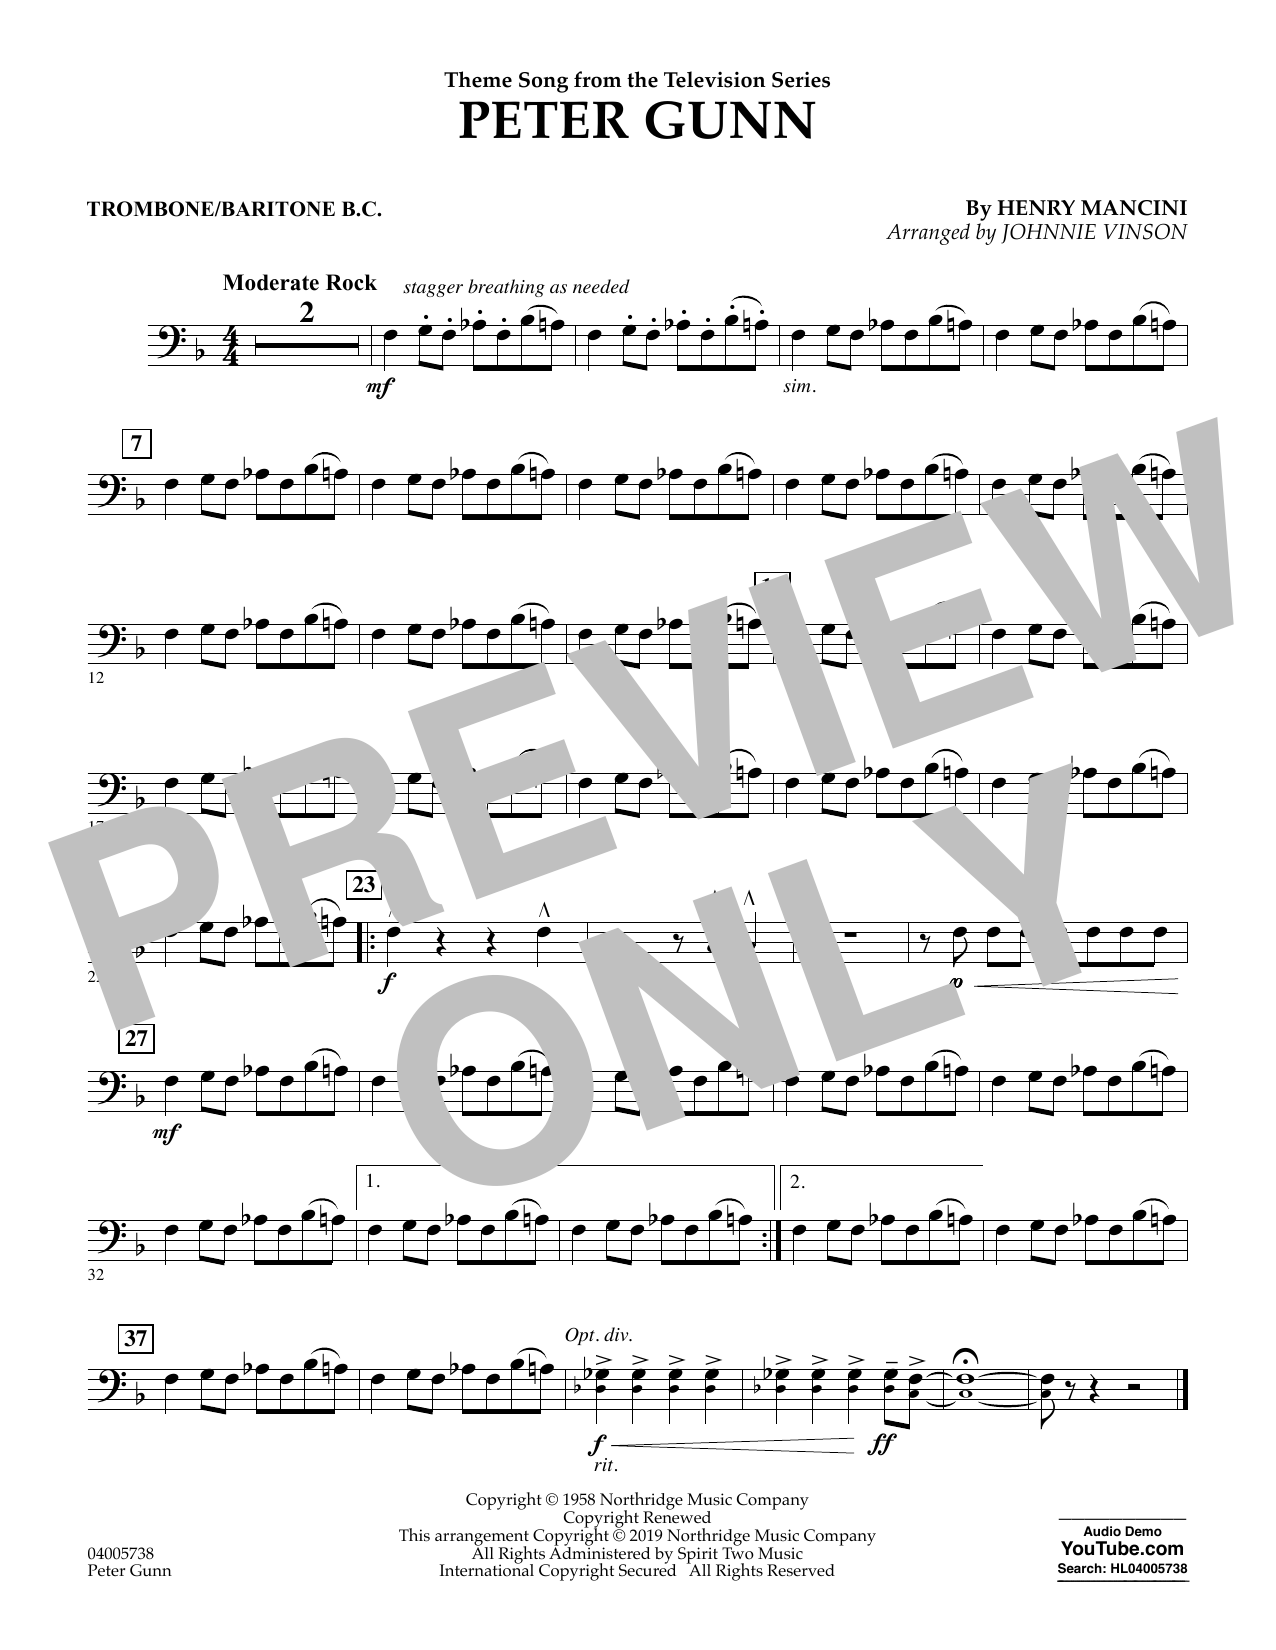 Henry Mancini Peter Gunn (arr. Johnnie Vinson) - Trombone/Baritone B.C. sheet music preview music notes and score for Concert Band including 1 page(s)